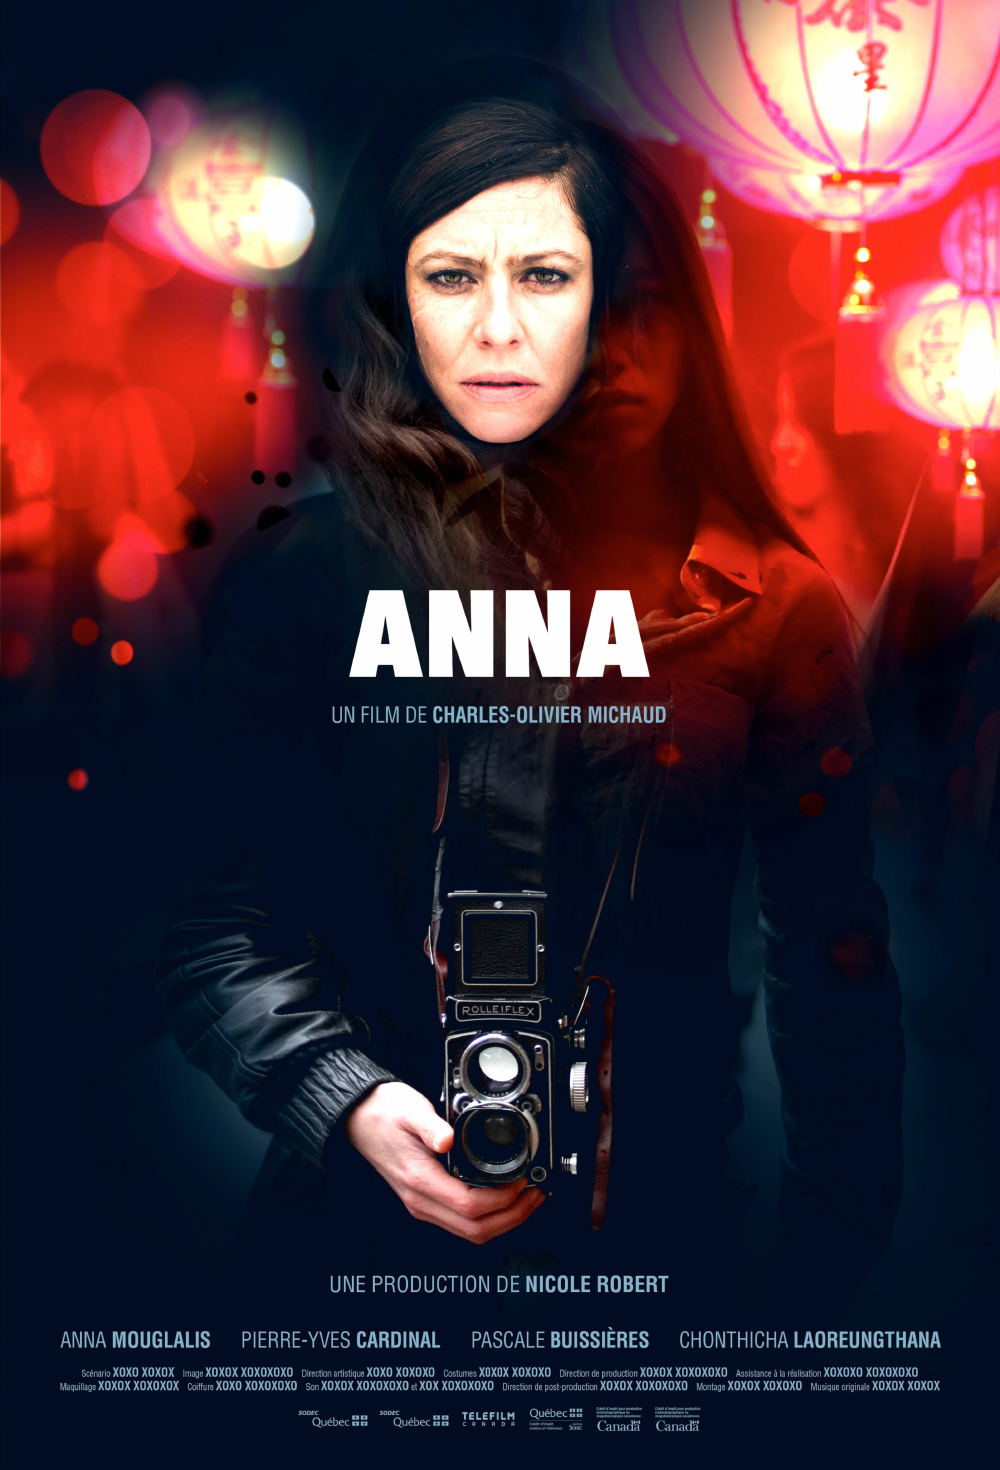 ANNA-Posters-5aout_00001.PNG